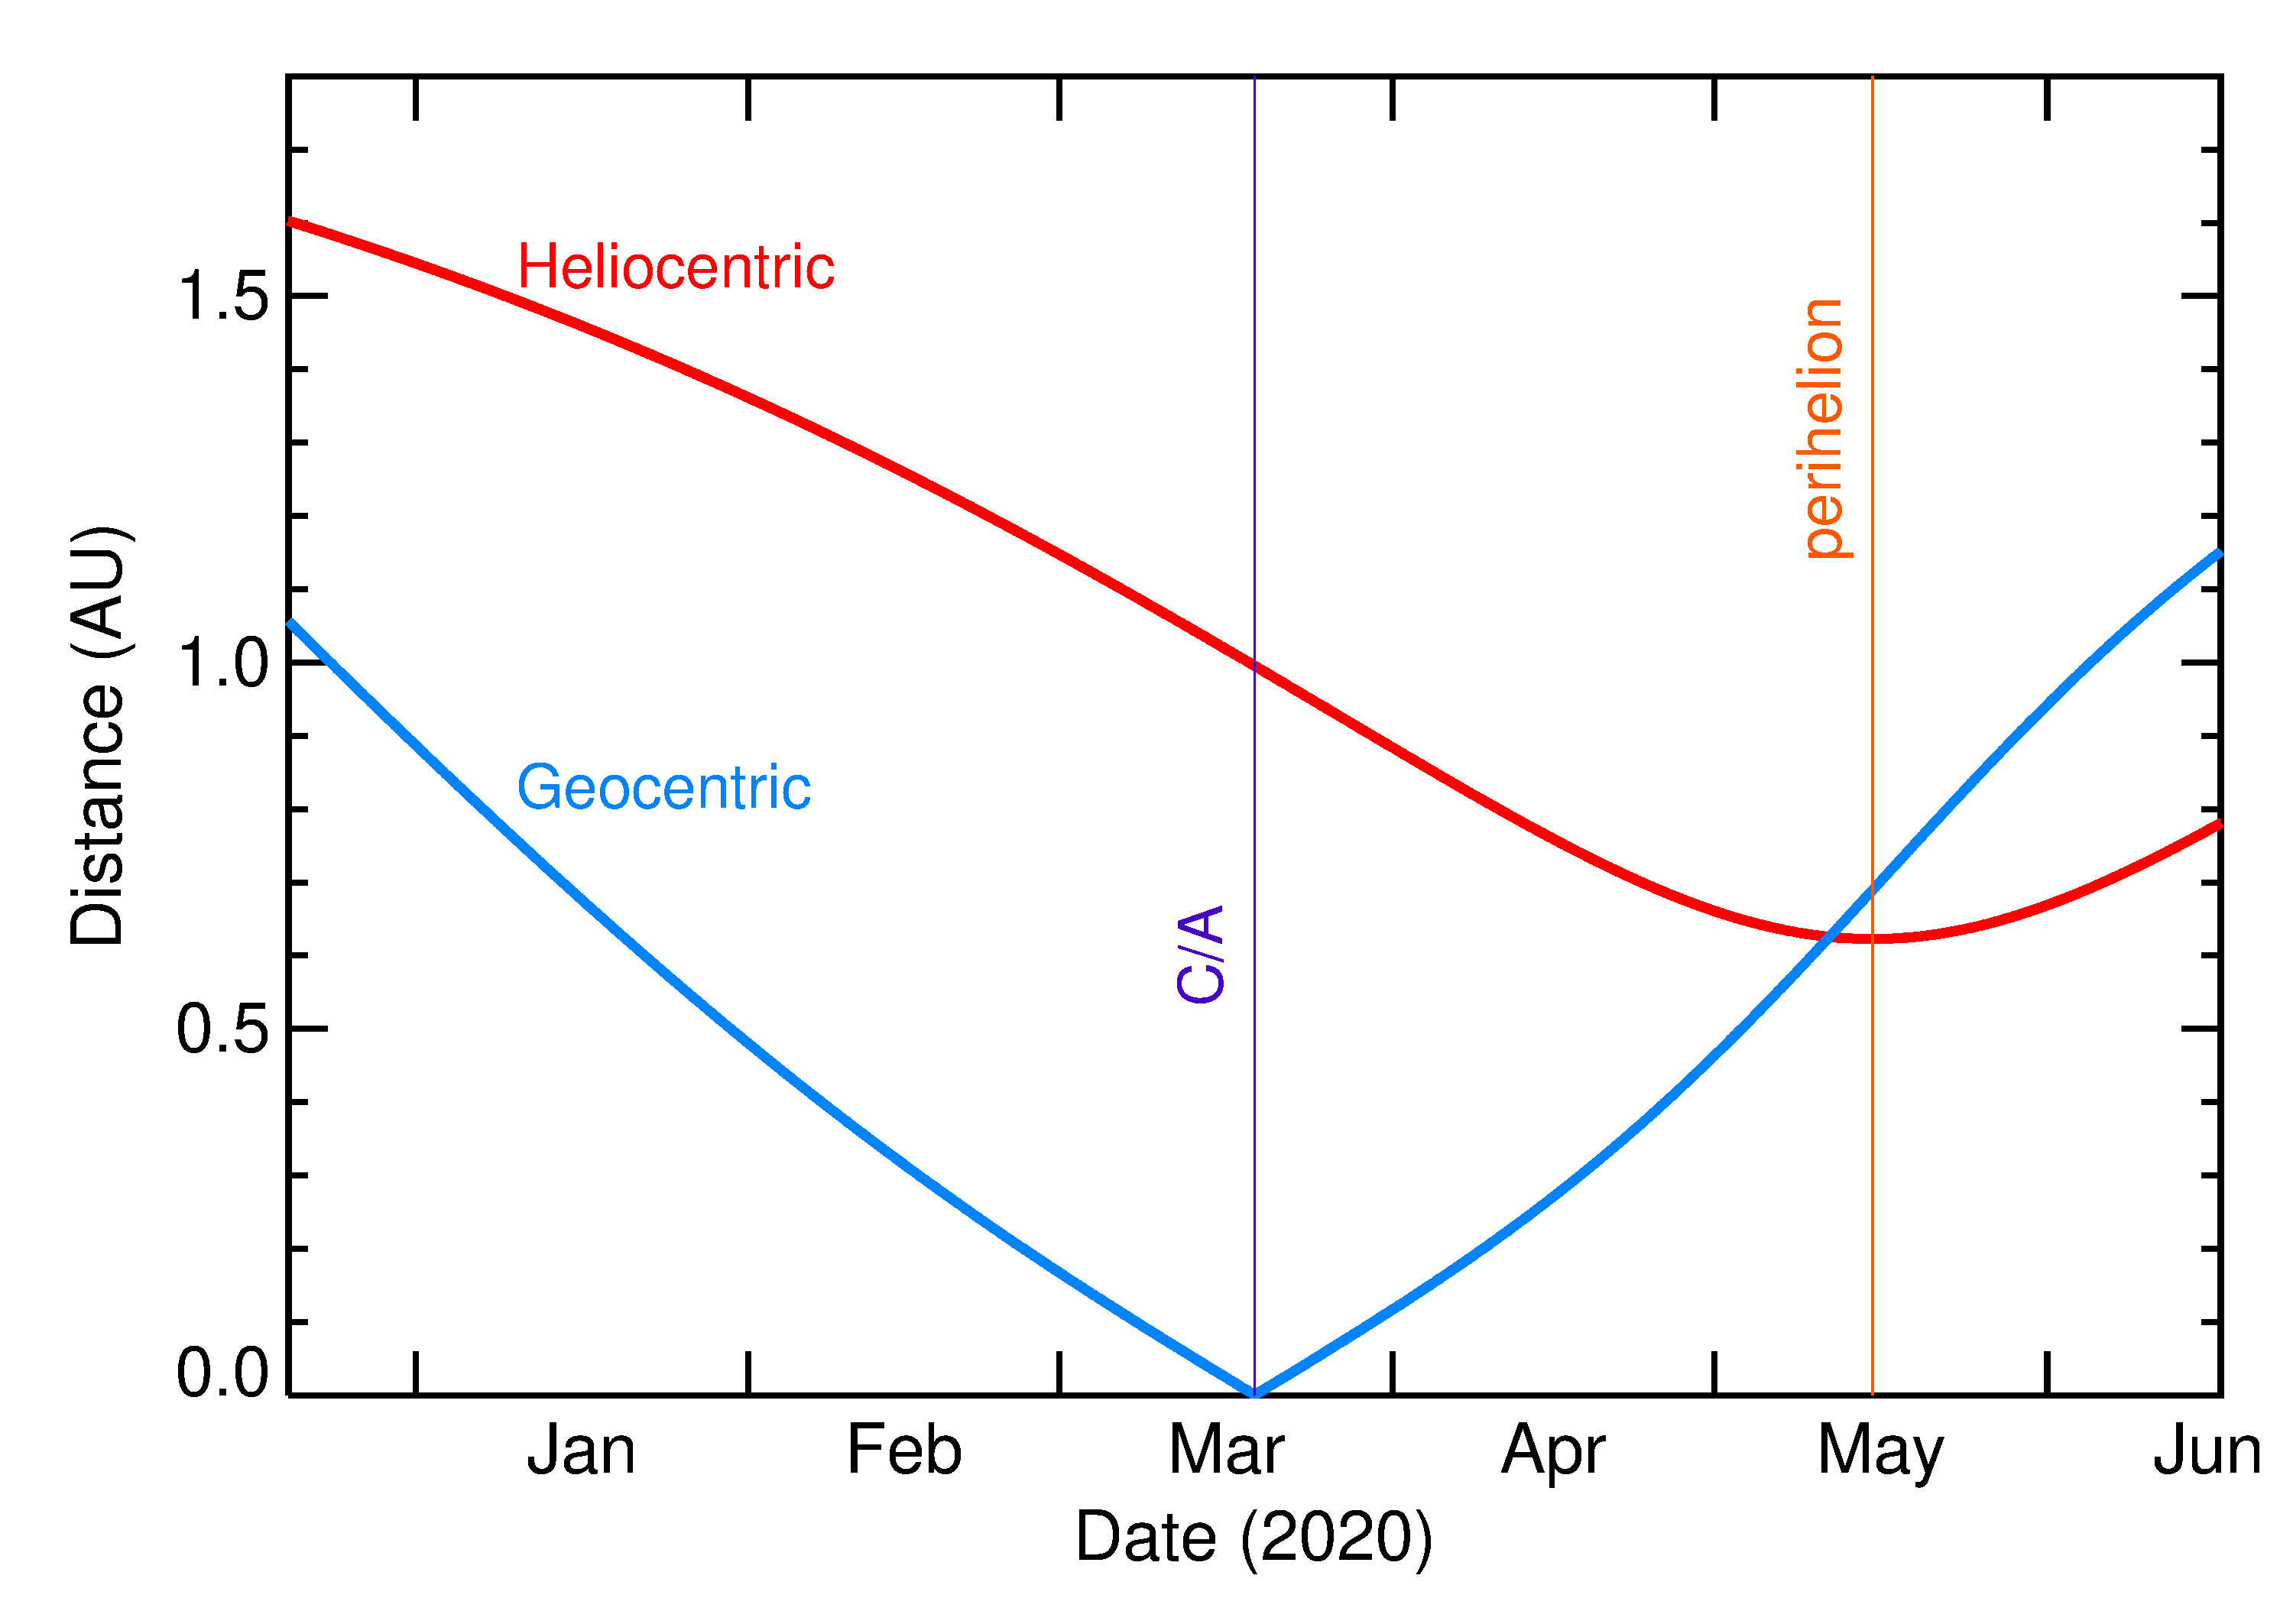 Heliocentric and Geocentric Distances of 2020 FD in the months around closest approach